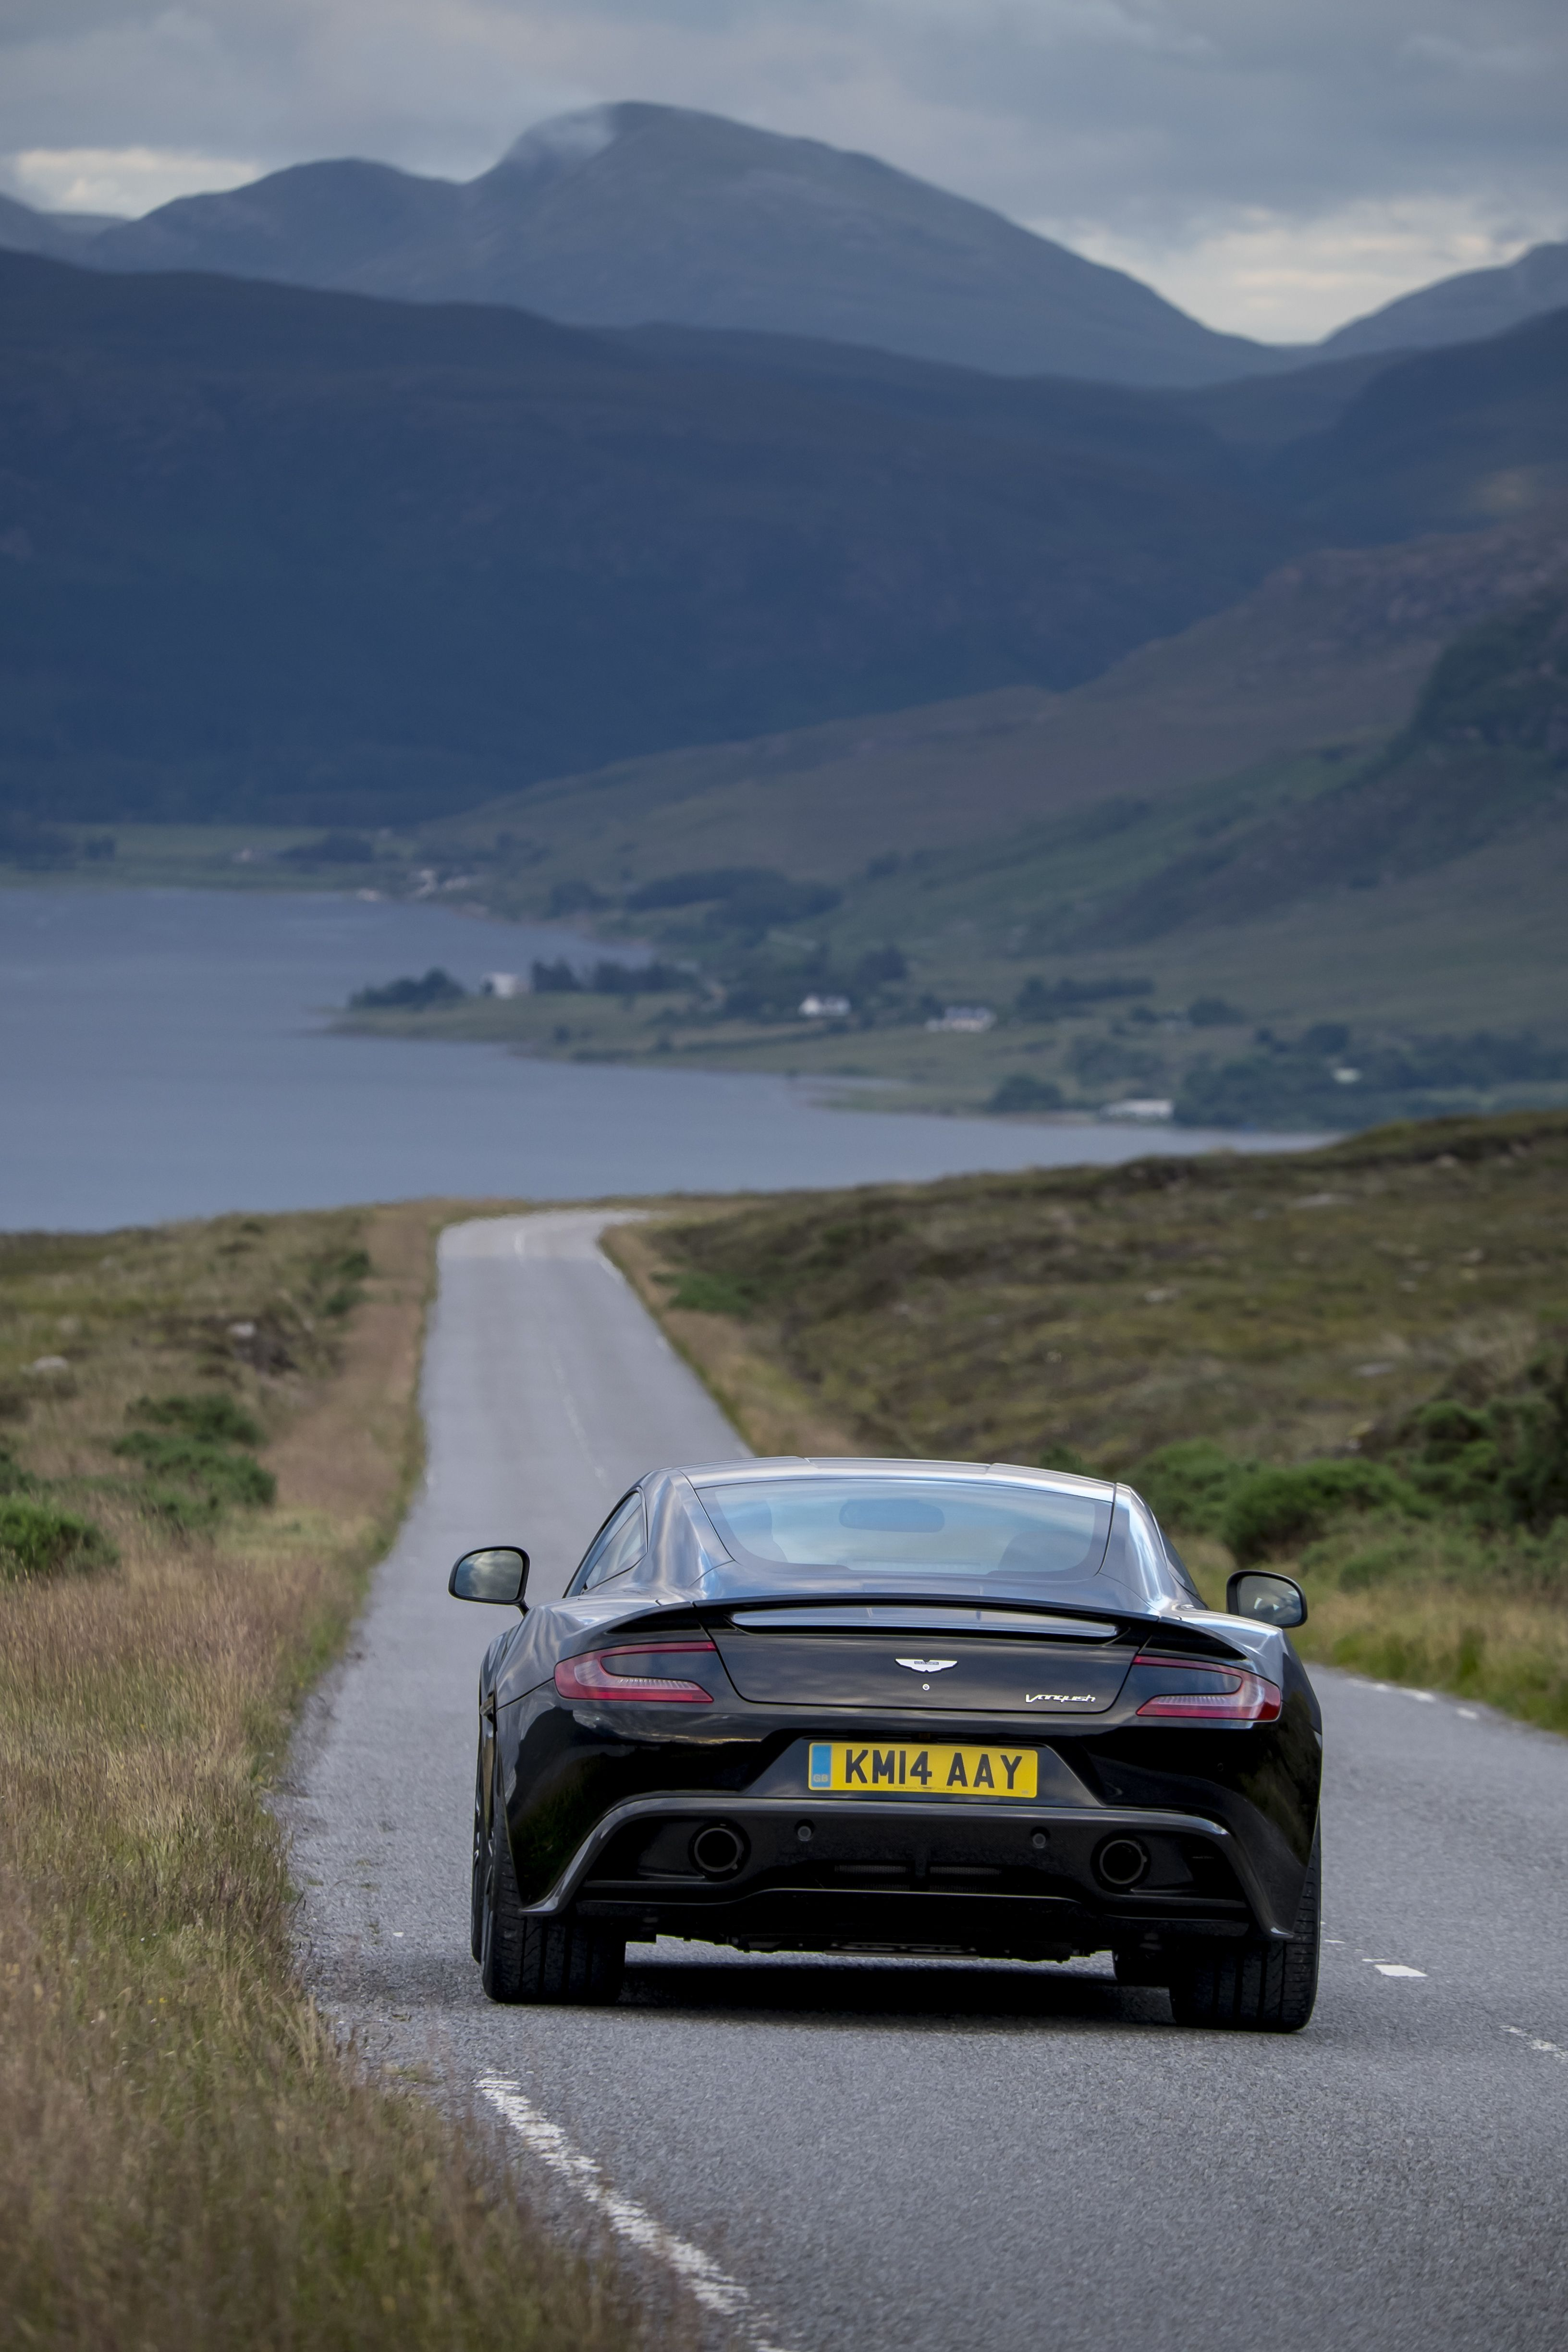 Vanquish Carbon Edition expresses beauty and soaring performance both with an extraordinary confidence, embracing its dark side with a fascinating theme and enriched with a unique package of carbon fibre and styled dark features. http://www.astonmartin.com/en/cars/the-new-vanquish/vanquish-carbon-edition